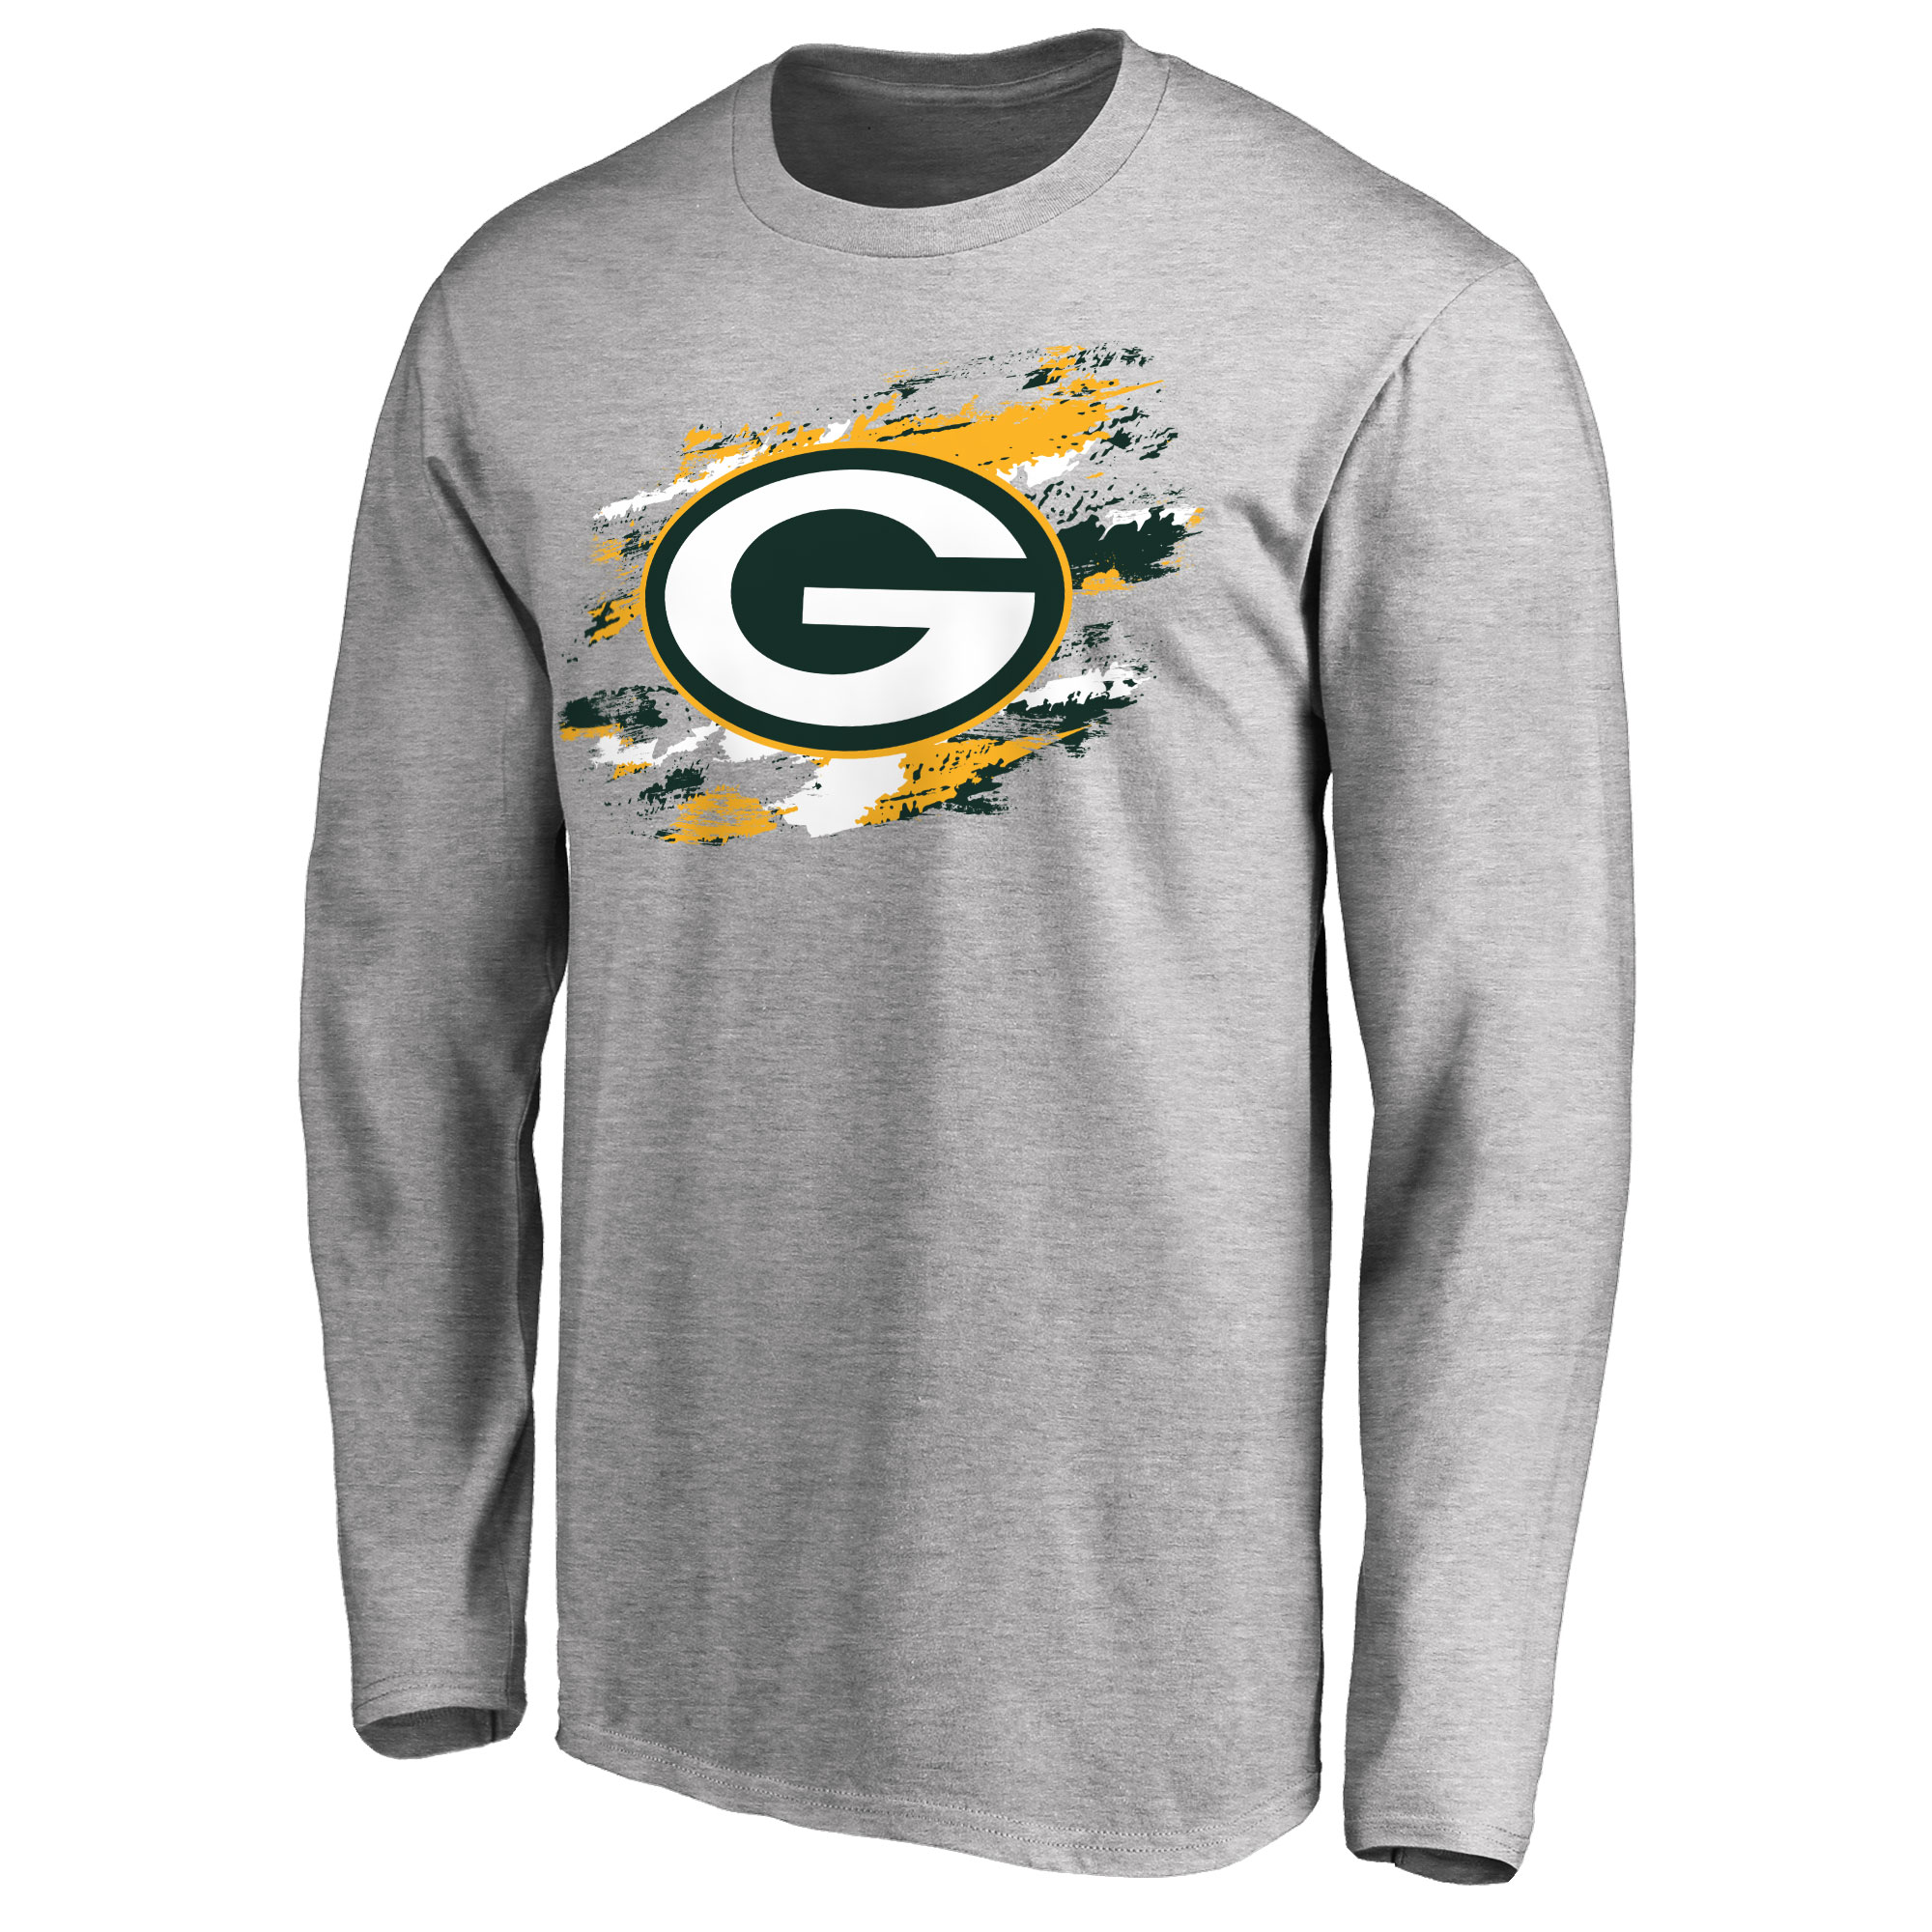 Green Bay Packers NFL Pro Line True Colors Long Sleeve T-Shirt - Ash